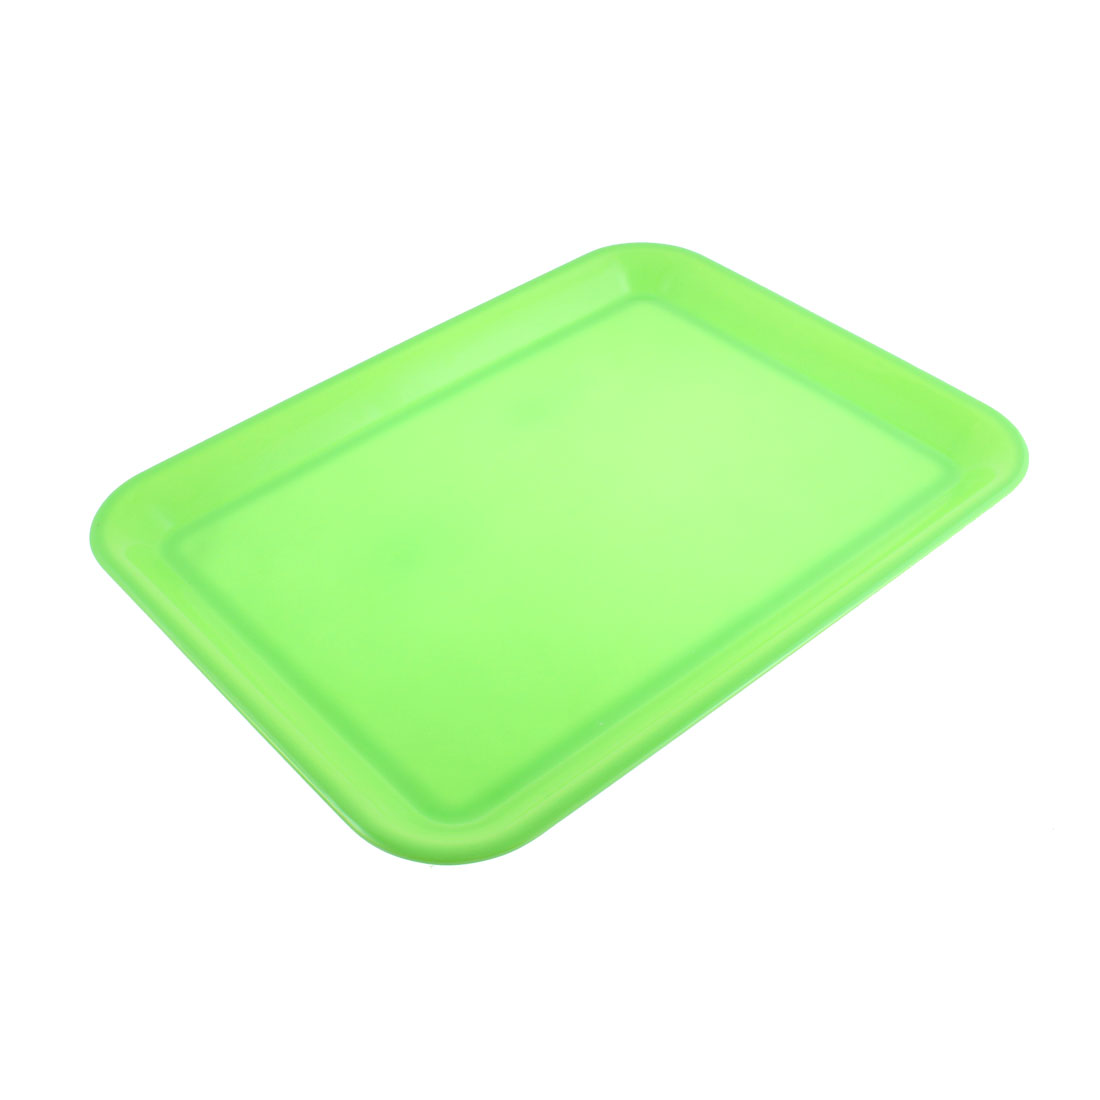 "Restaurant Kitchen Rectangle Shape Food Coffee Serving Tray Green 17"" Length"